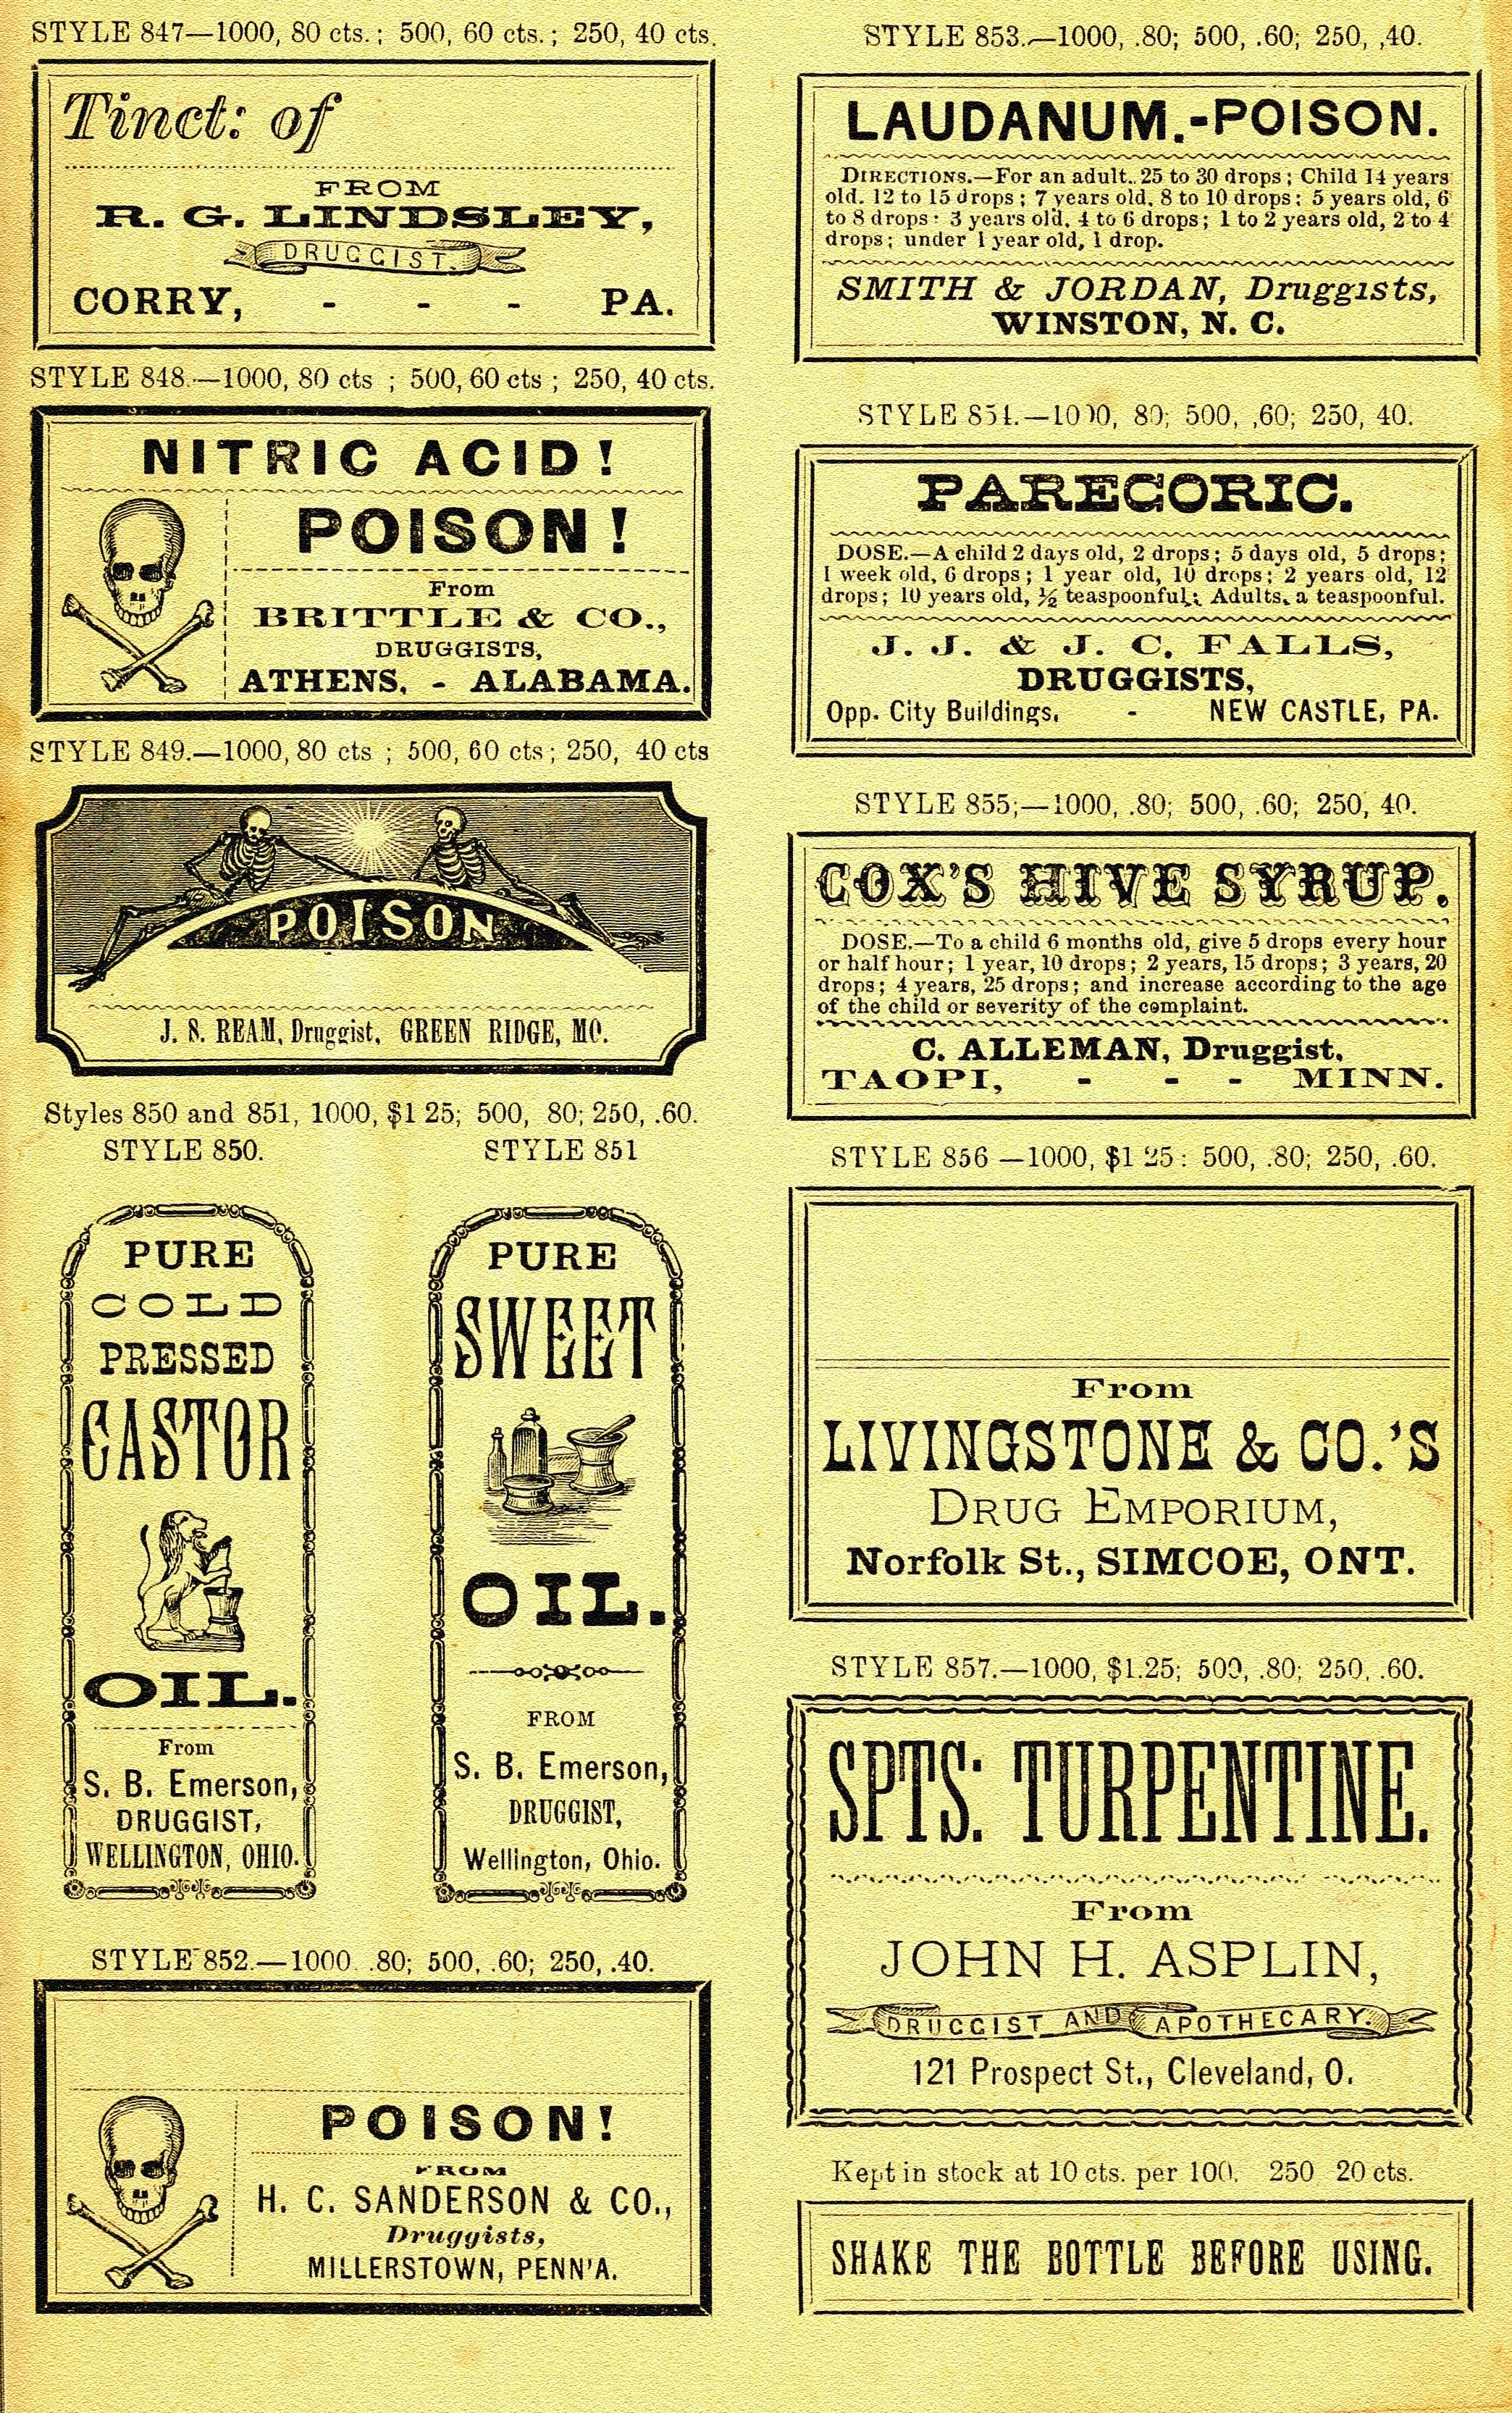 Printable Labels For Apothecary Jars | Oh So Nifty Vintage Graphics - Free Printable Apothecary Jar Labels